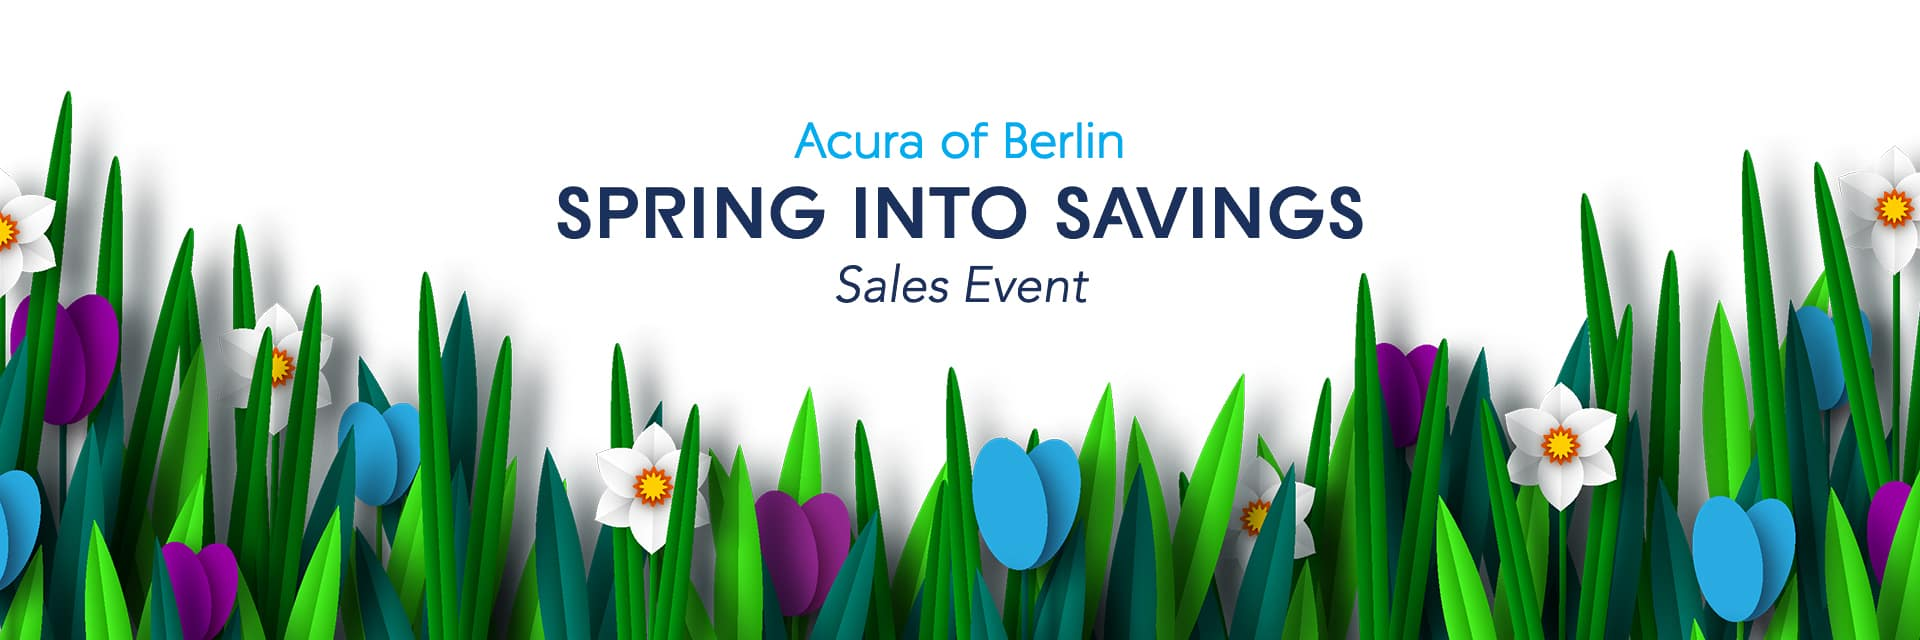 AOB_Spring-Into-Savings_